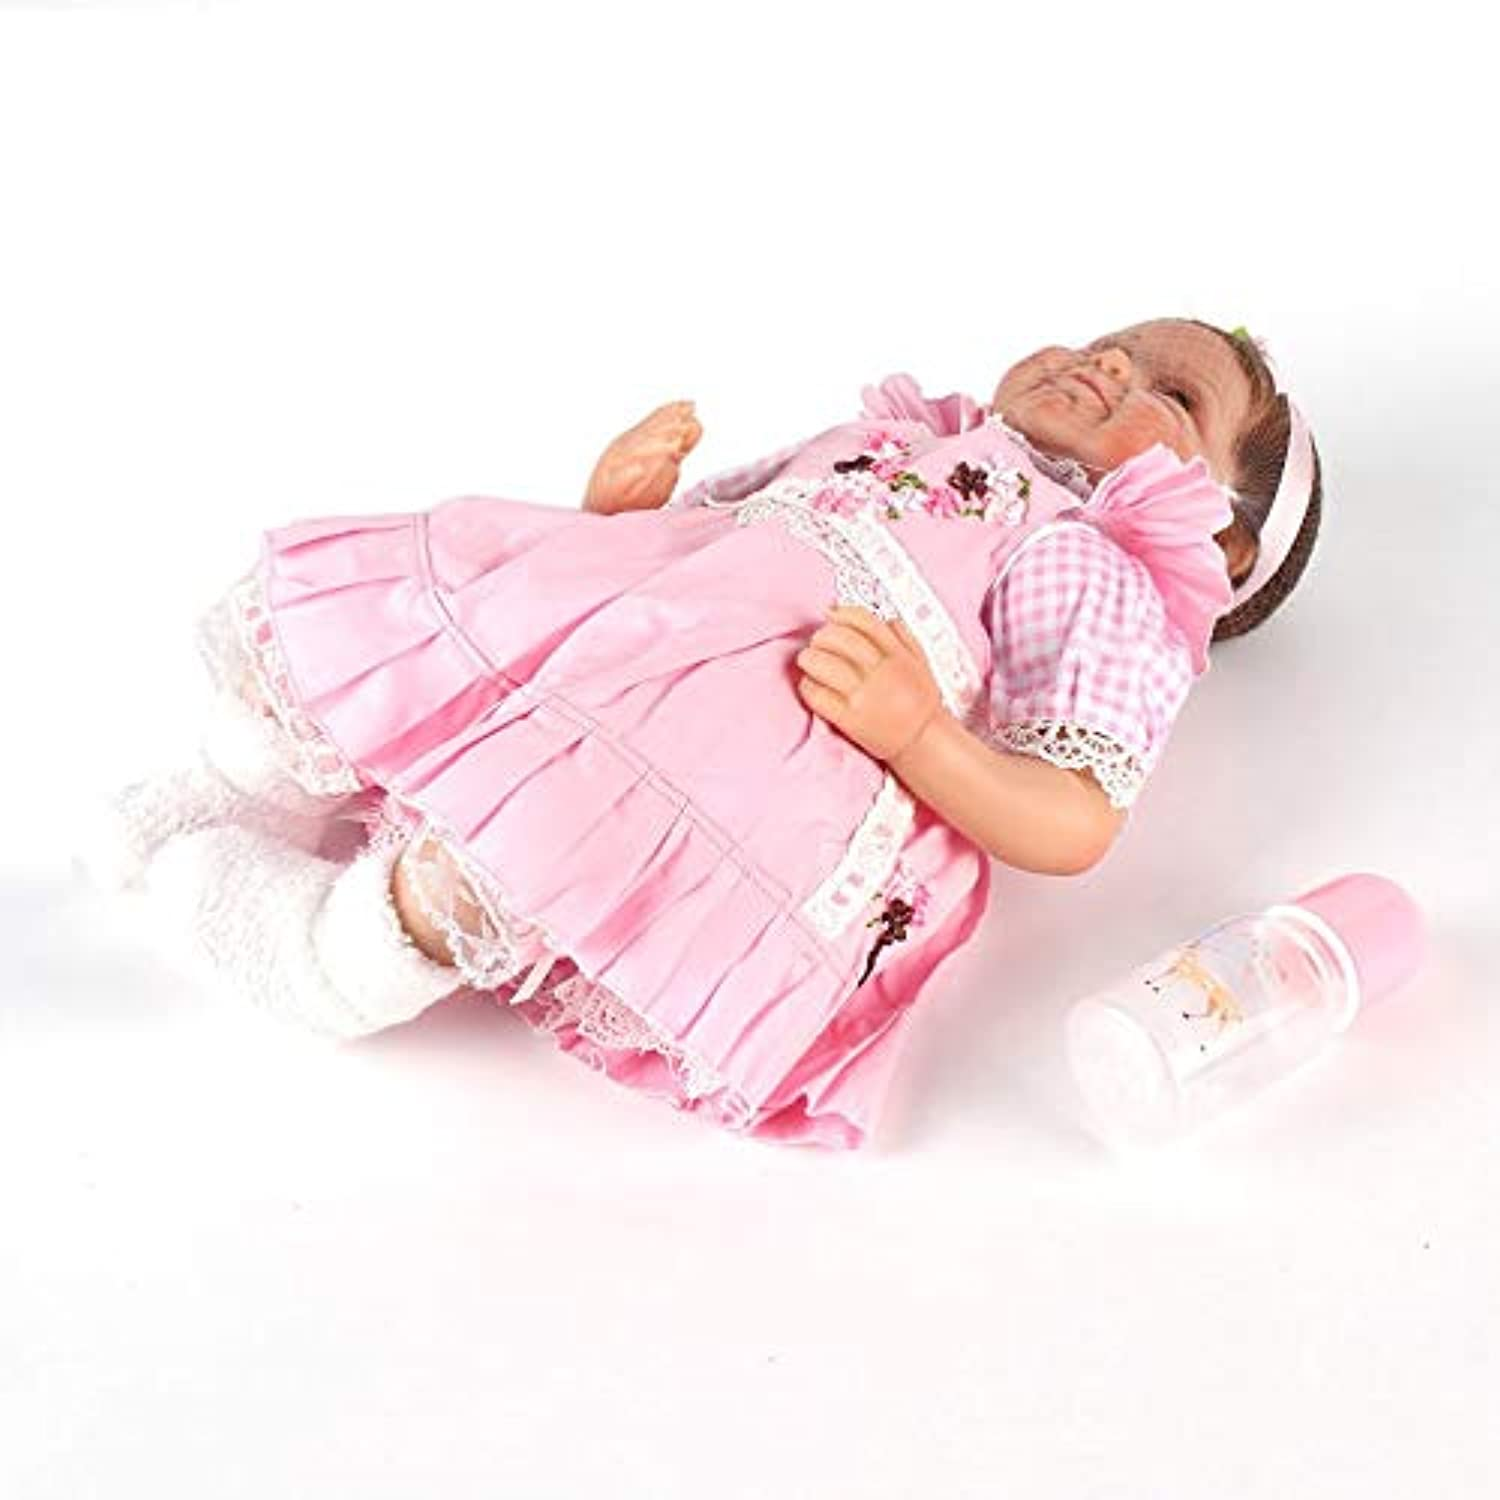 Candybar Girls Smile Realistic Lifelike Silicone Reborn Newborn Baby Doll Realike Play House Toy Exquisite Birthday Present